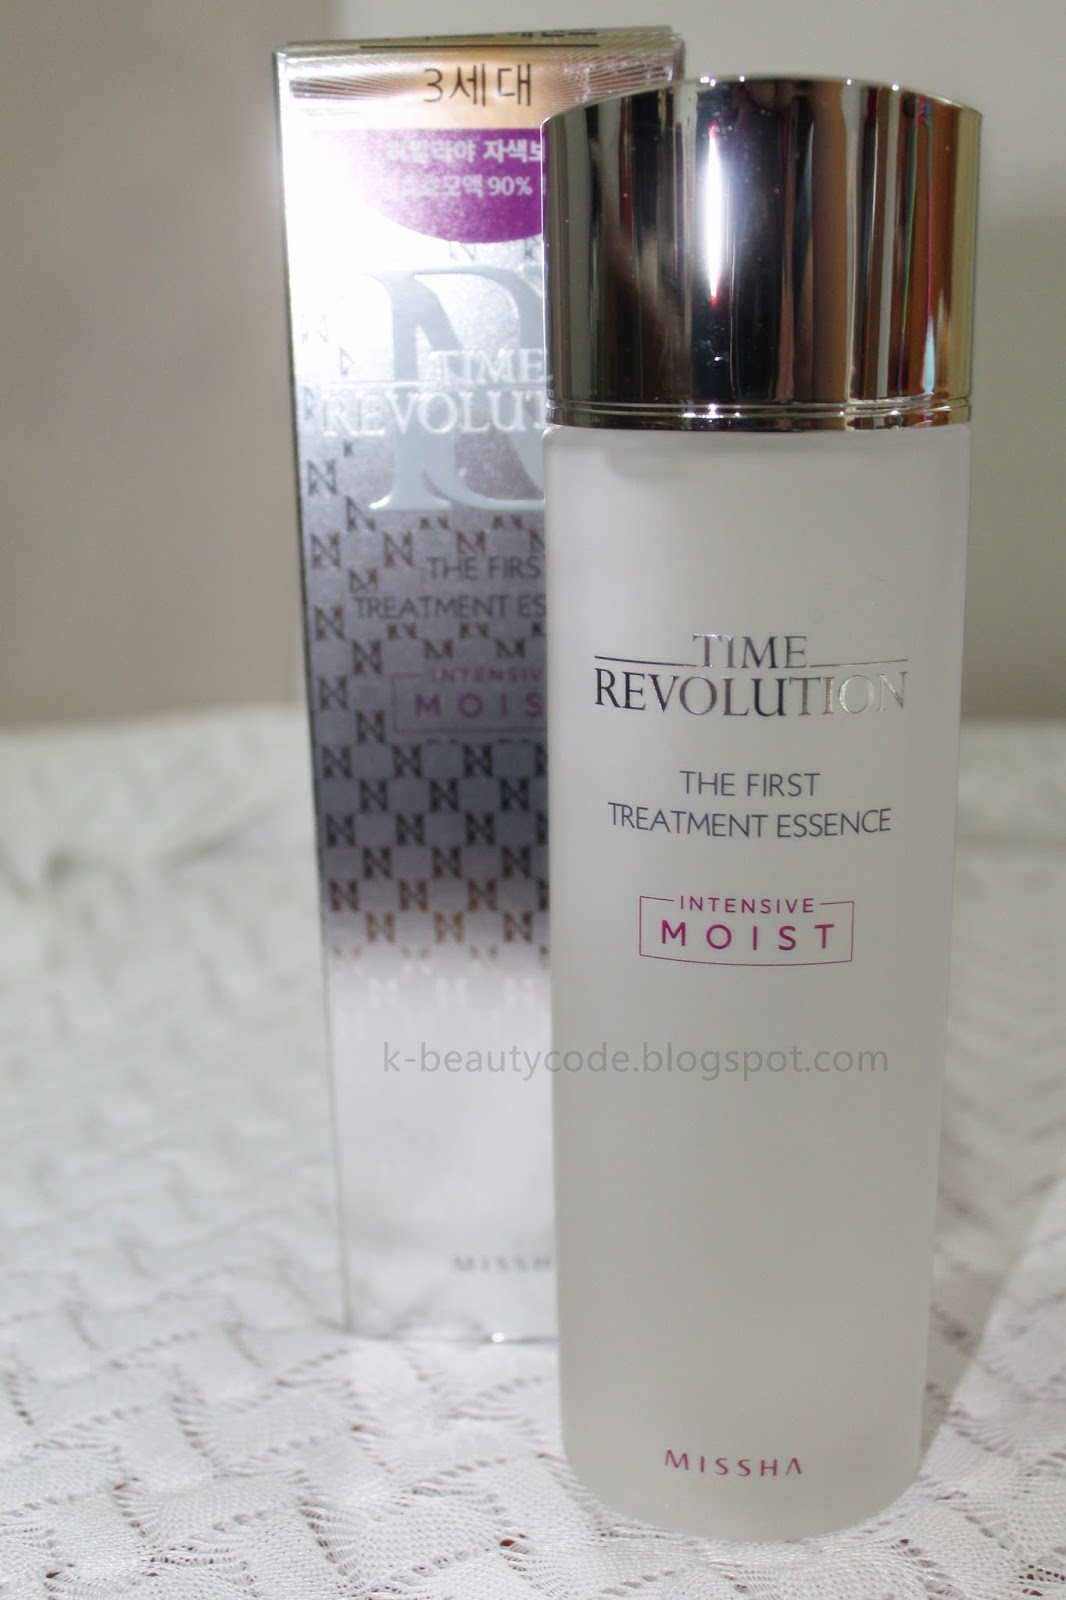 K Beauty Code March 2017 Missha Time Revolution The First Treatment Essence Intensive Moist This Is Also My 2nd Purchasing Full Size From